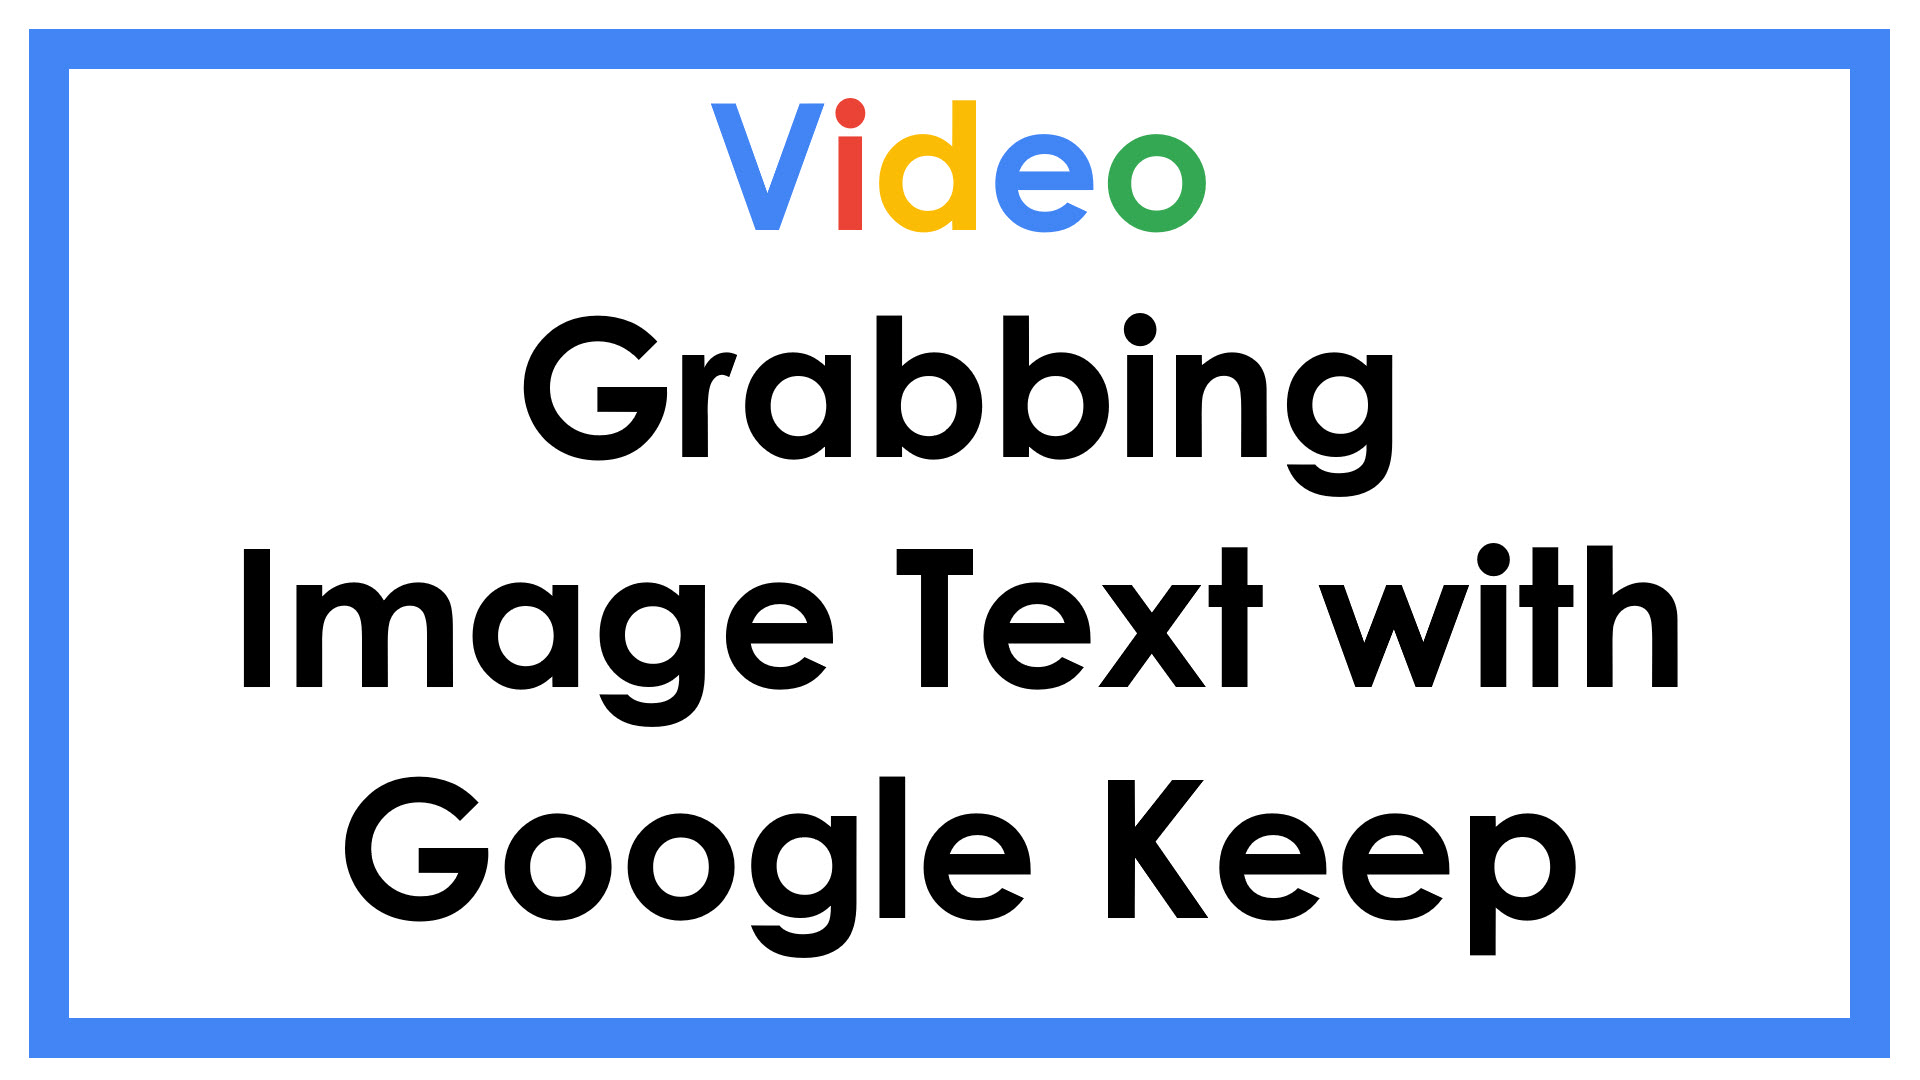 Grabbing image text with Google Keep